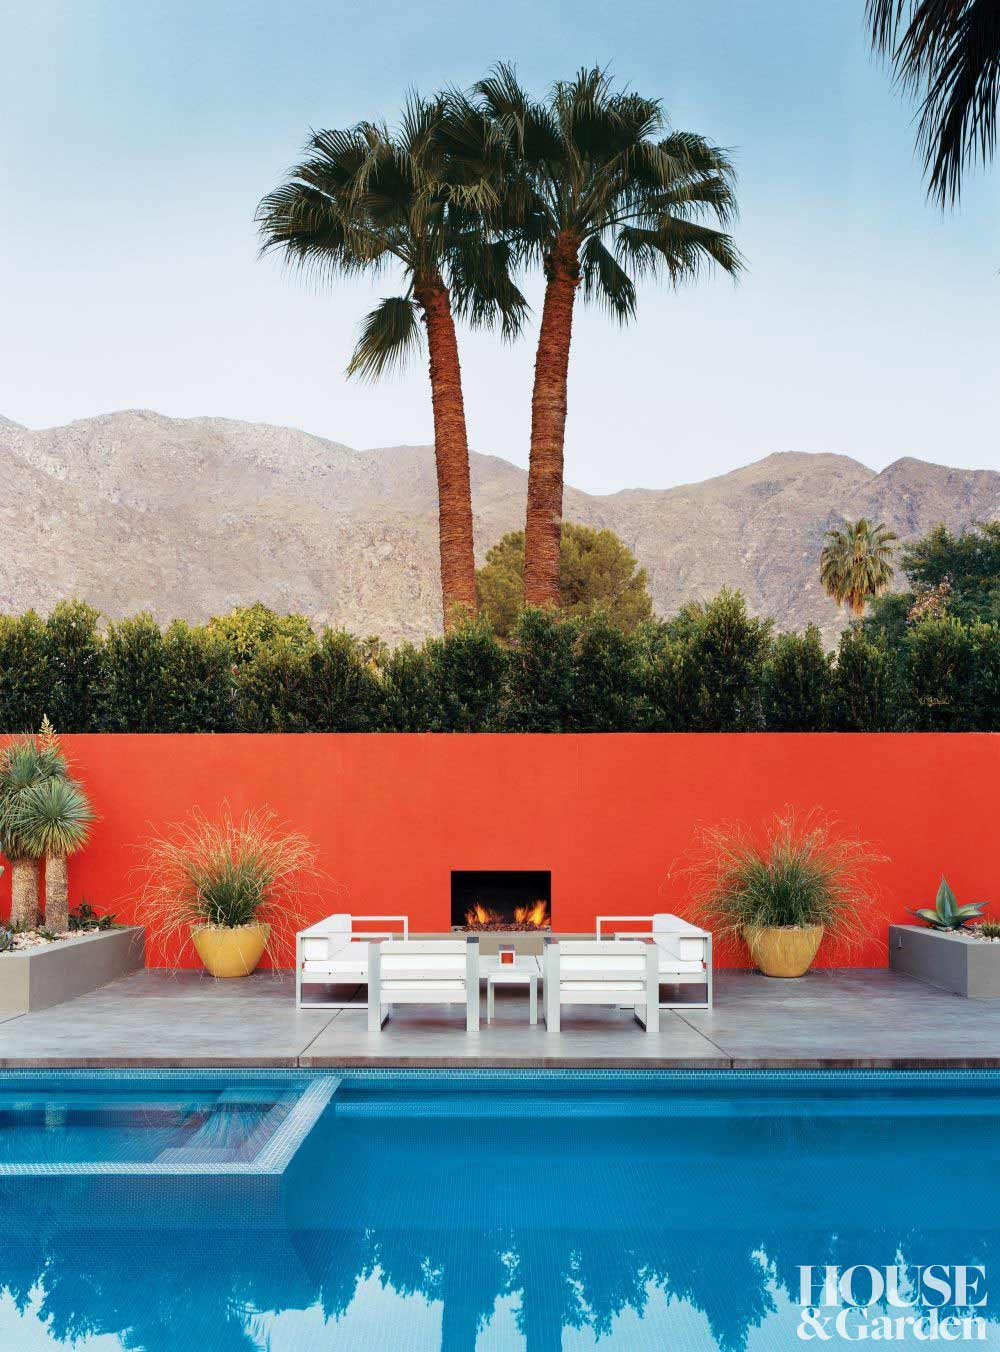 White outdoor setting by pool with red fence.